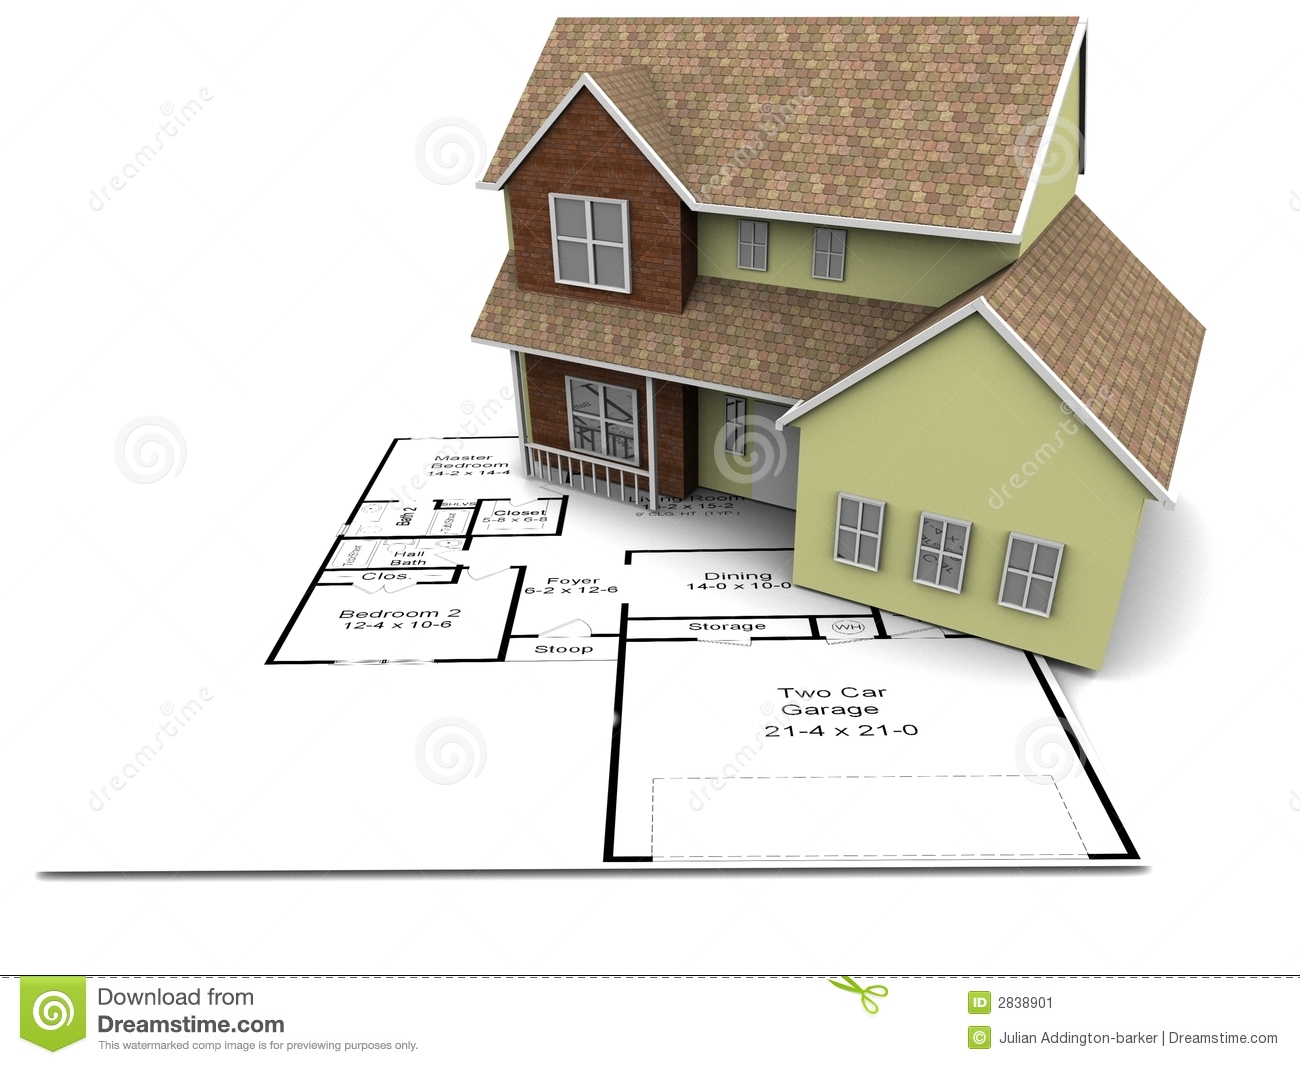 New house plans stock illustration illustration of house for New houses plans